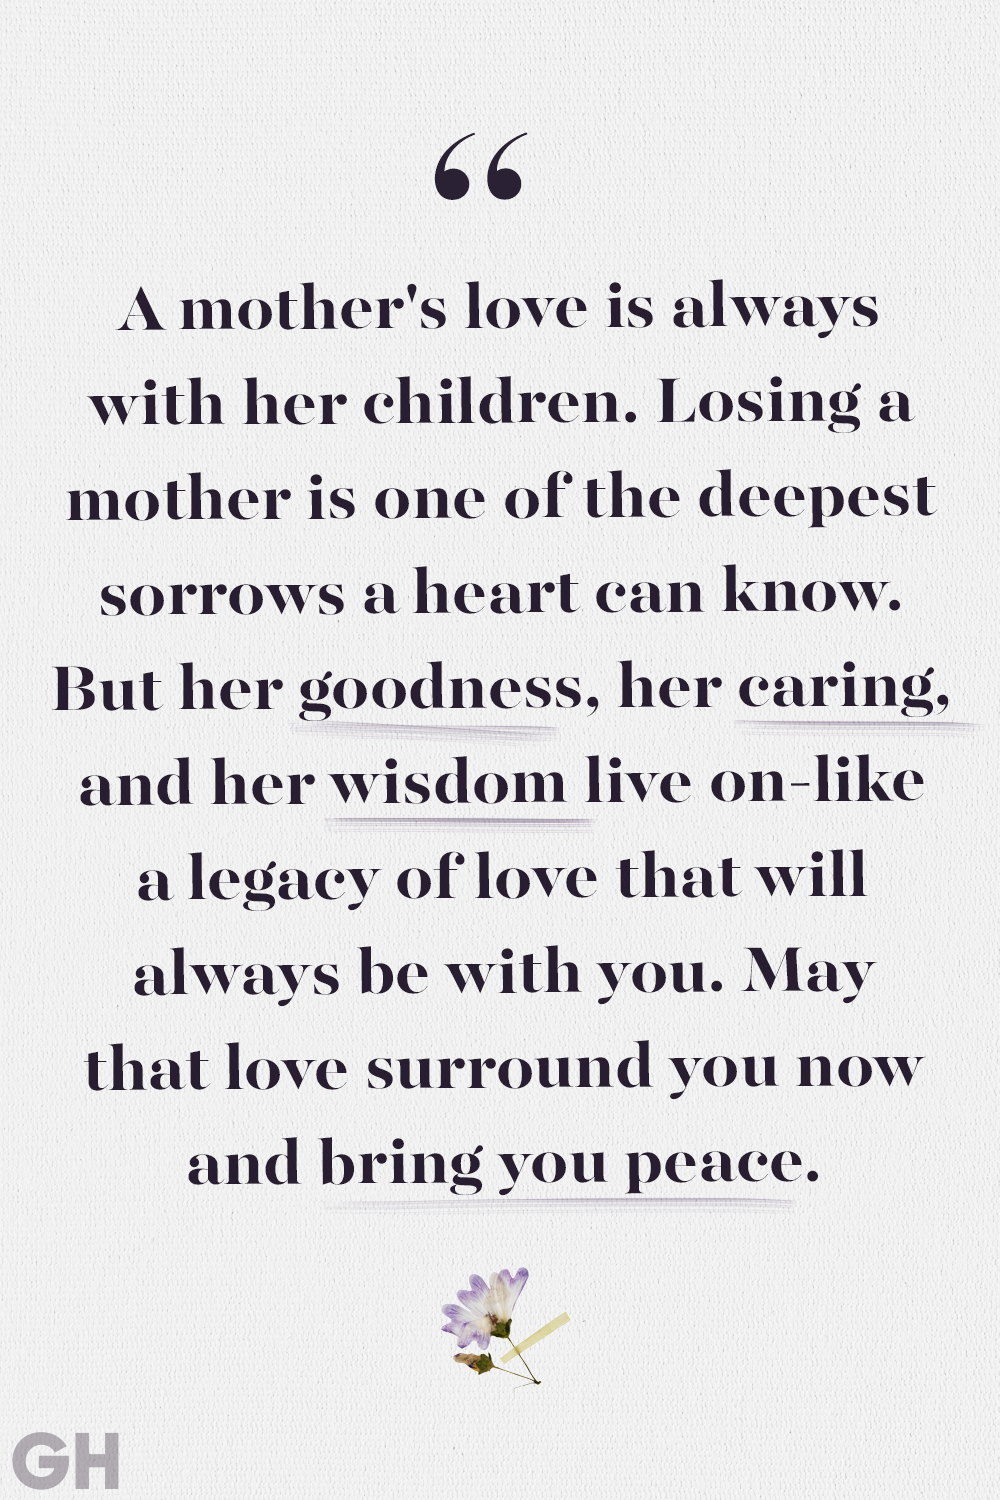 17 comforting loss of mother quotes quotes to remember moms who passed away